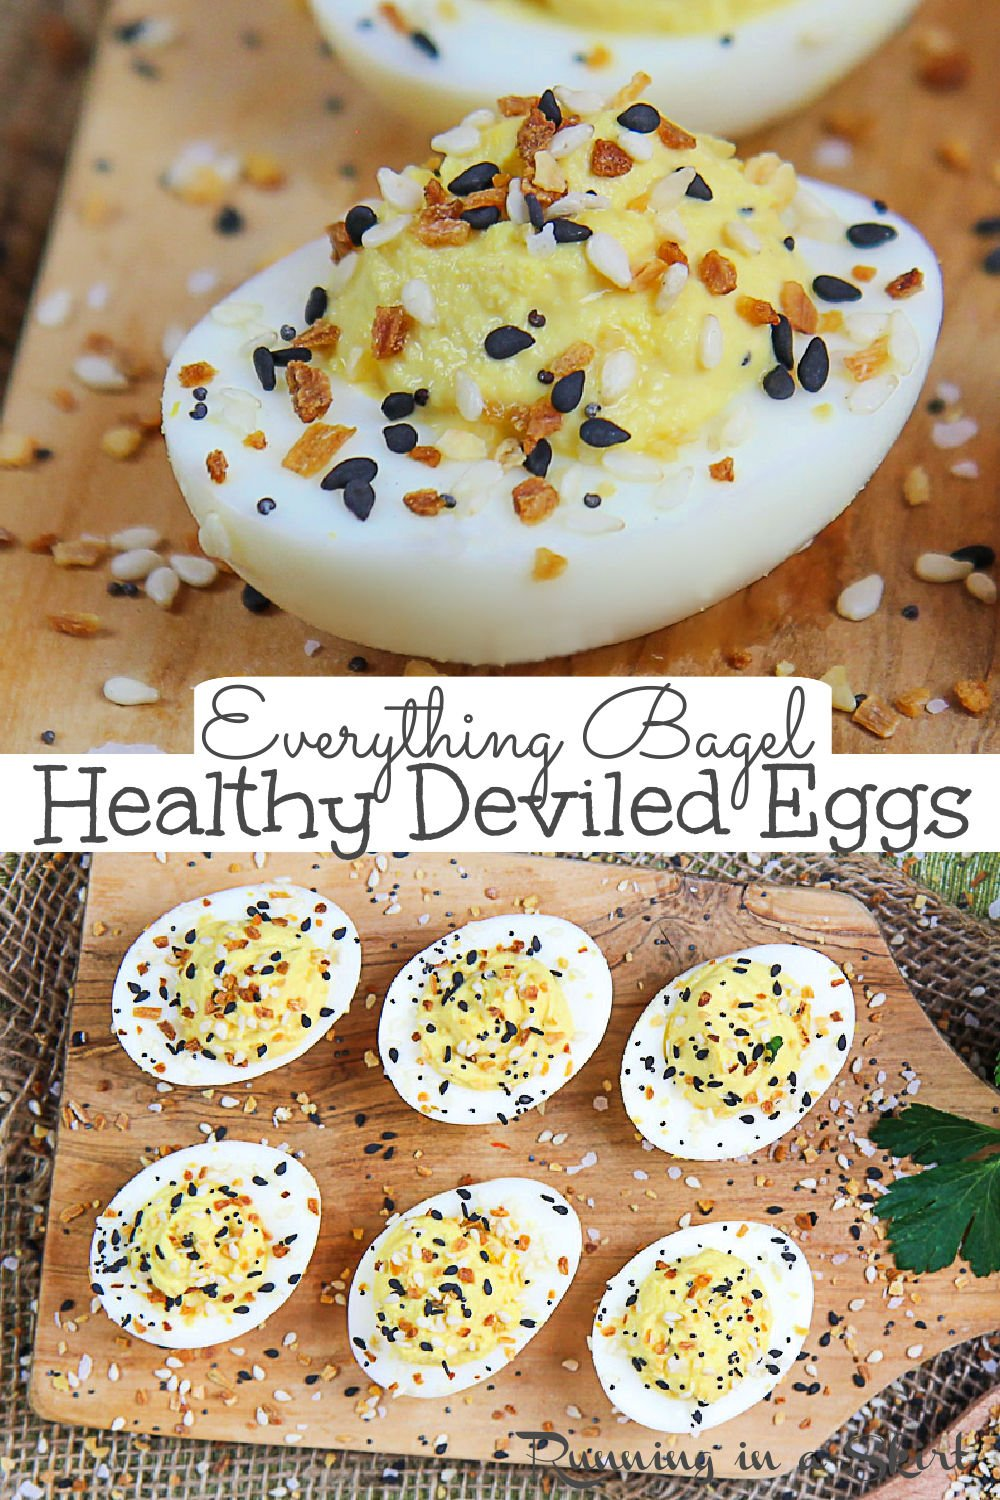 Everything Bagel Deviled Eggs with Everything Bagel Seasoning. A Healthy Deviled Egg recipe using greek yogurt and no mayo and only 6 ingredients. This super easy deviled eggs recipe is the best twist on the classic southern recipe. A simple side dish for Easter or summer cookouts. If you are looking for a fun use for Trader Joe's Everything But the Bagel Seasoning this is it! Clean Eating, Vegetarian, Healthy, Low Carb, Gluten Free /Running in a Skirt #easter #healthy #everythingbagelseasoning via @juliewunder